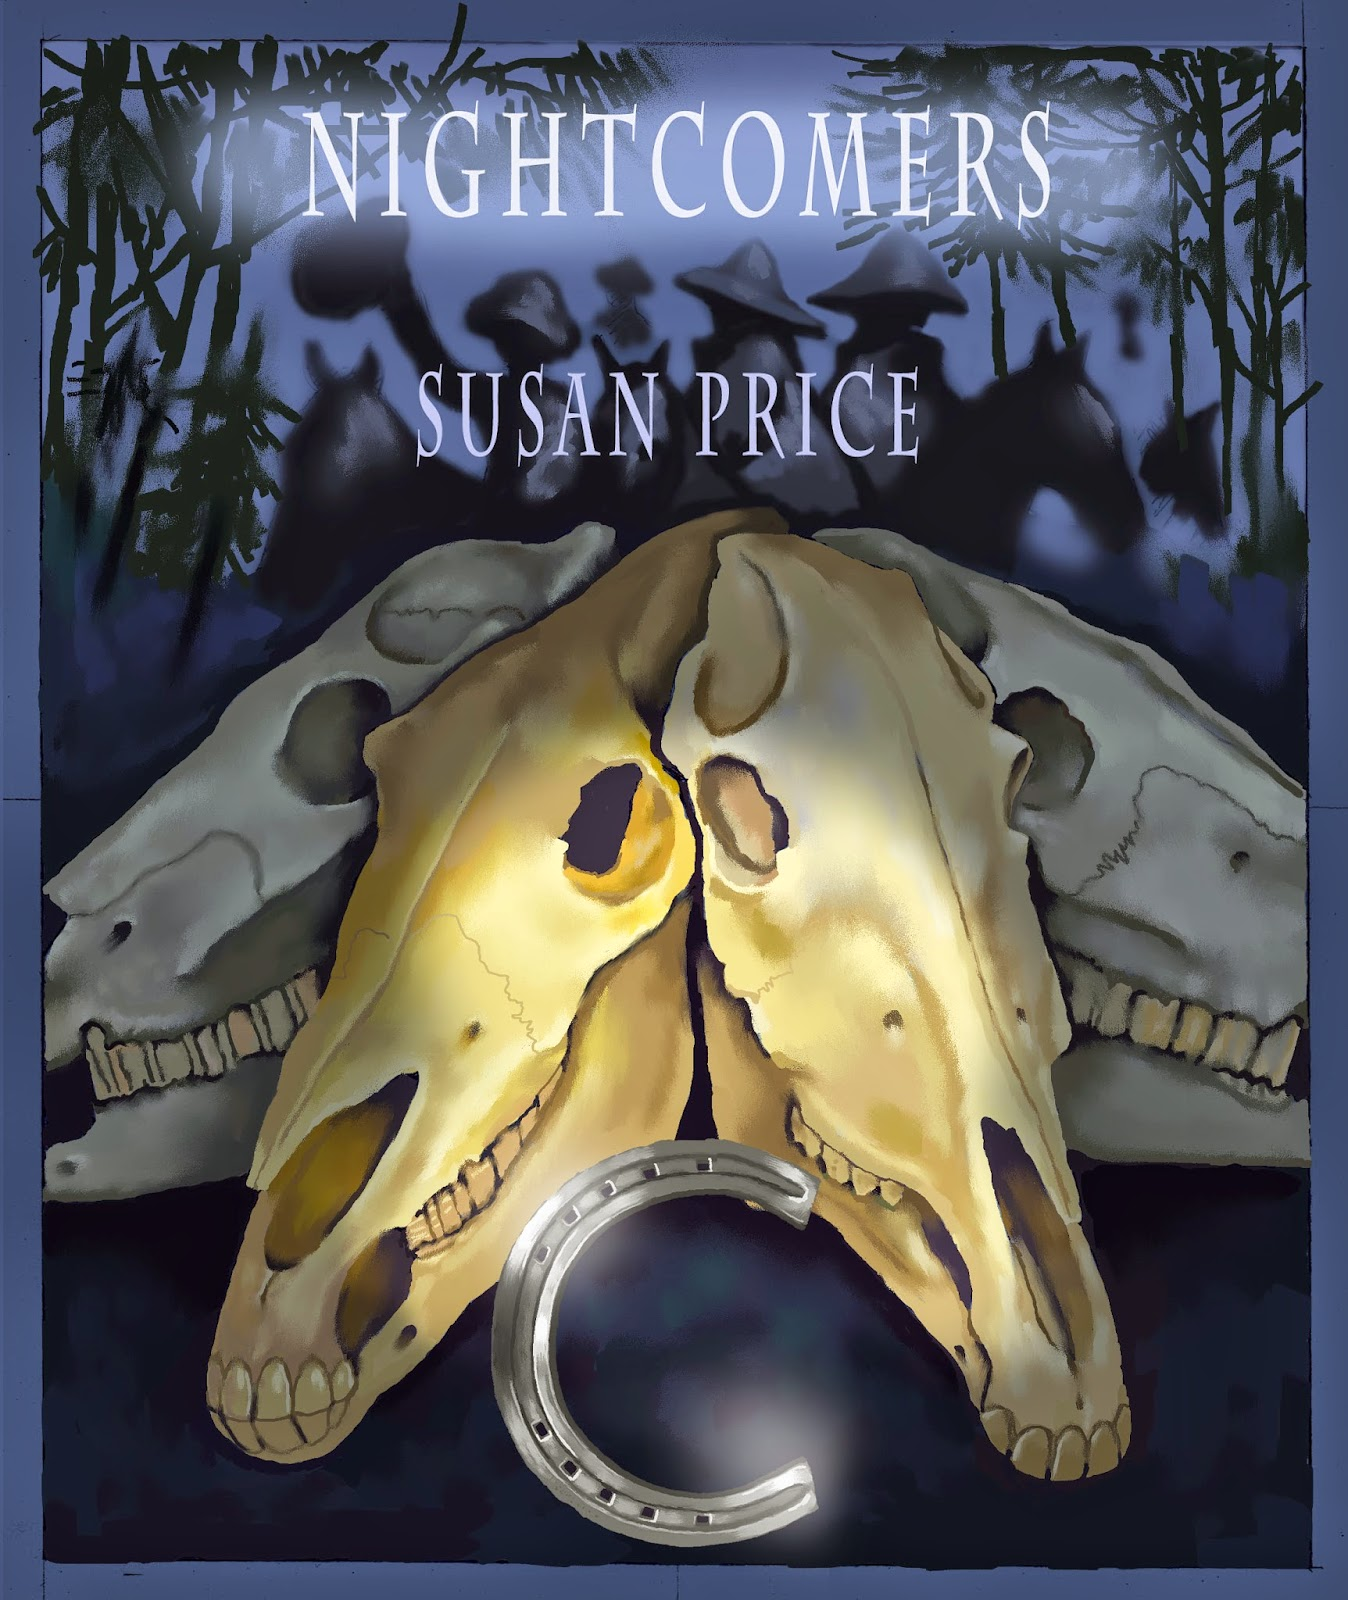 http://www.amazon.co.uk/Nightcomers-Eight-Stories-Prices-Haunting-ebook/dp/B0060VH4HU/